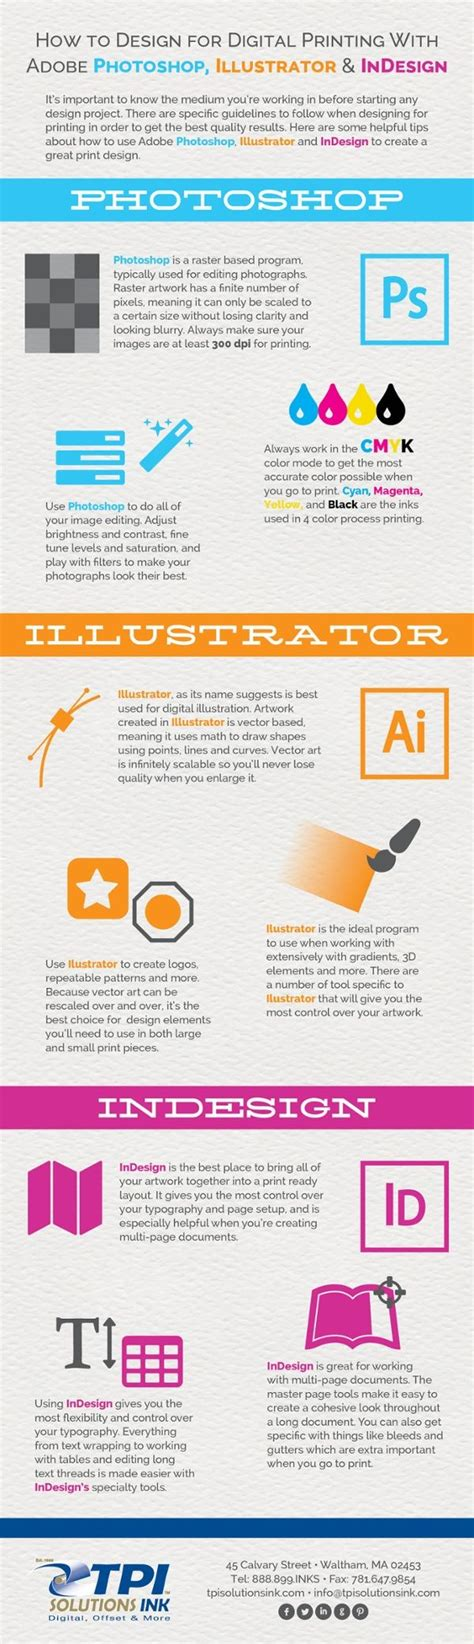 indesign tutorial infographic 1000 images about design ideas on pinterest behance